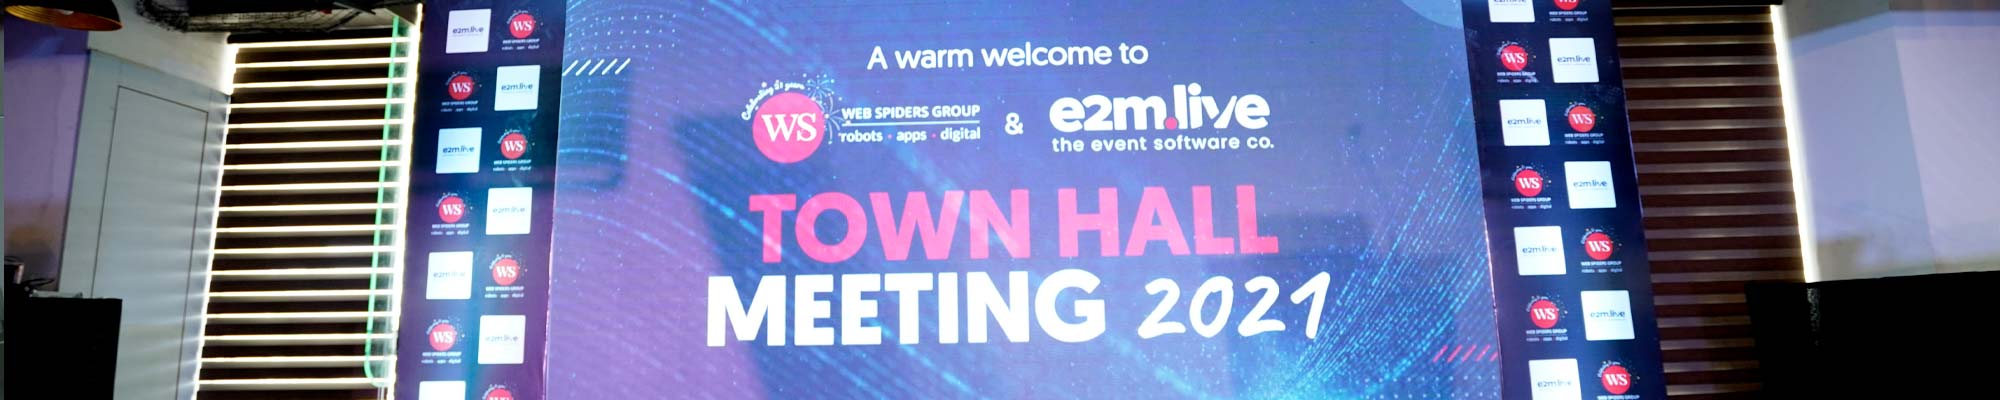 WS Town Hall 2021 – Welcoming Back In-Person Events